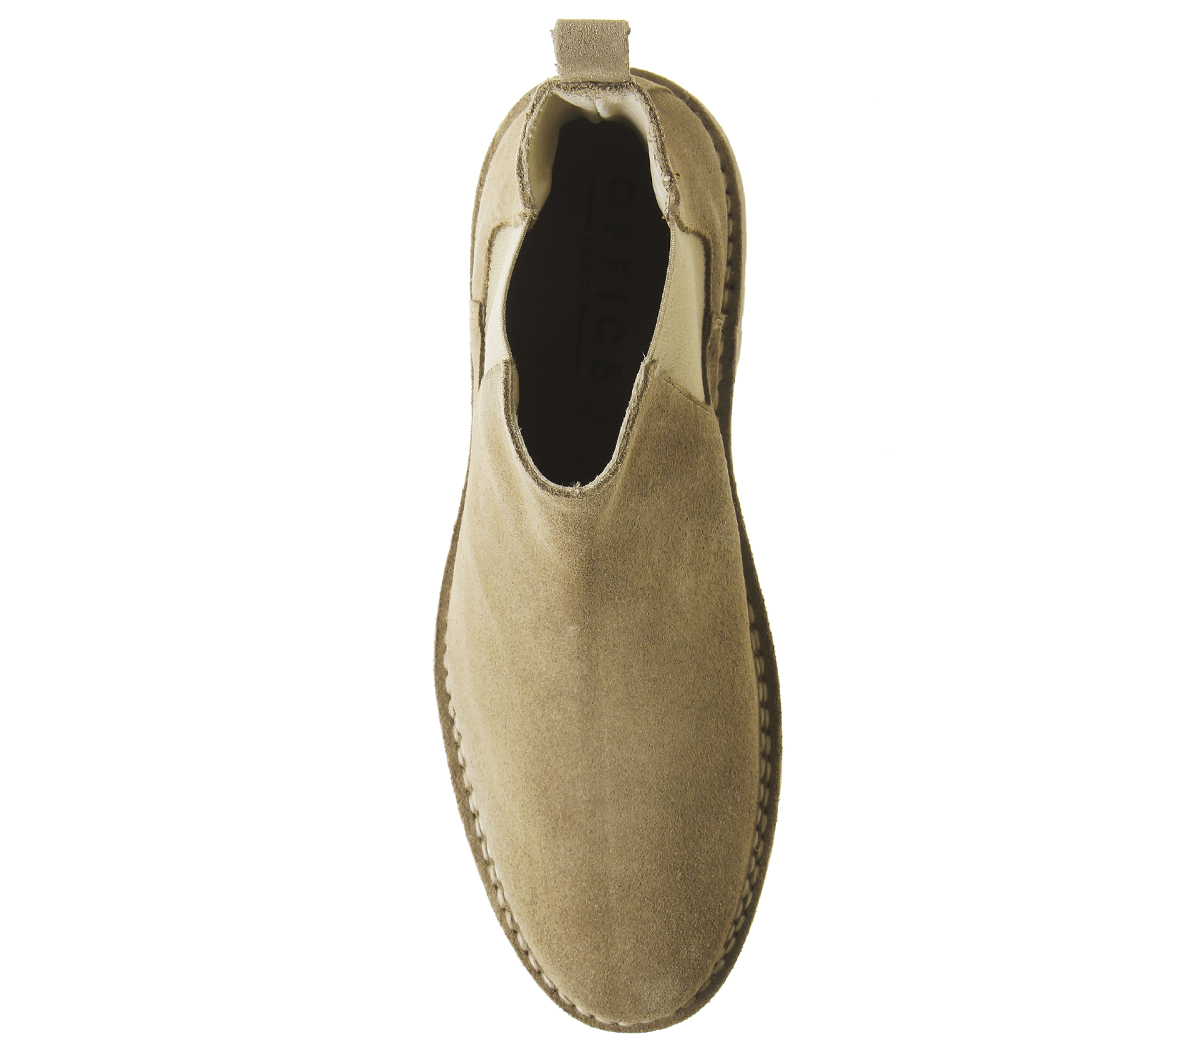 Mens-Office-Impala-Chelsea-Boots-Beige-Suede-Boots thumbnail 9